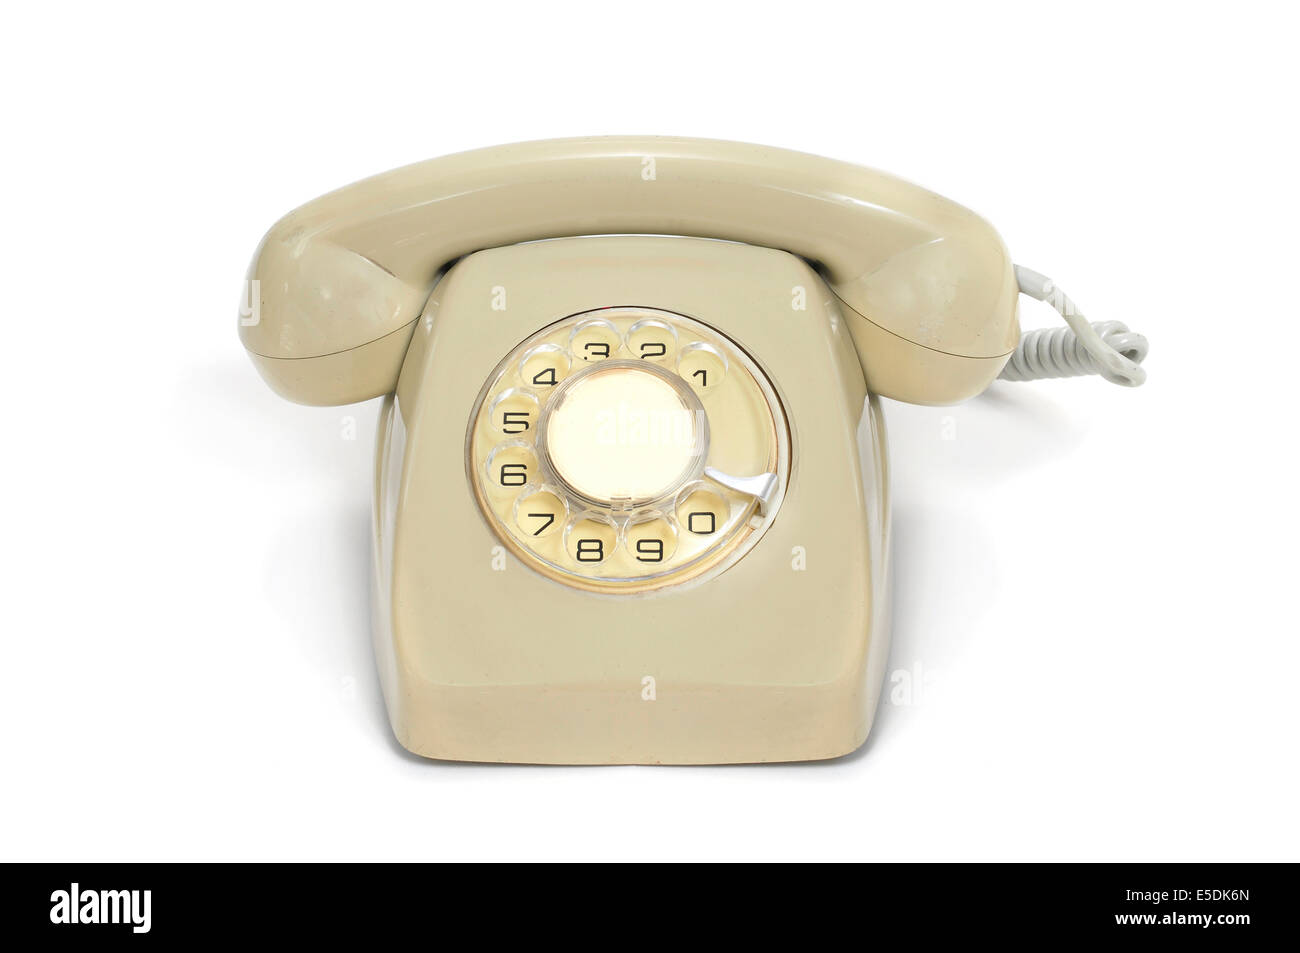 a beige old rotary dial telephone on a white background - Stock Image